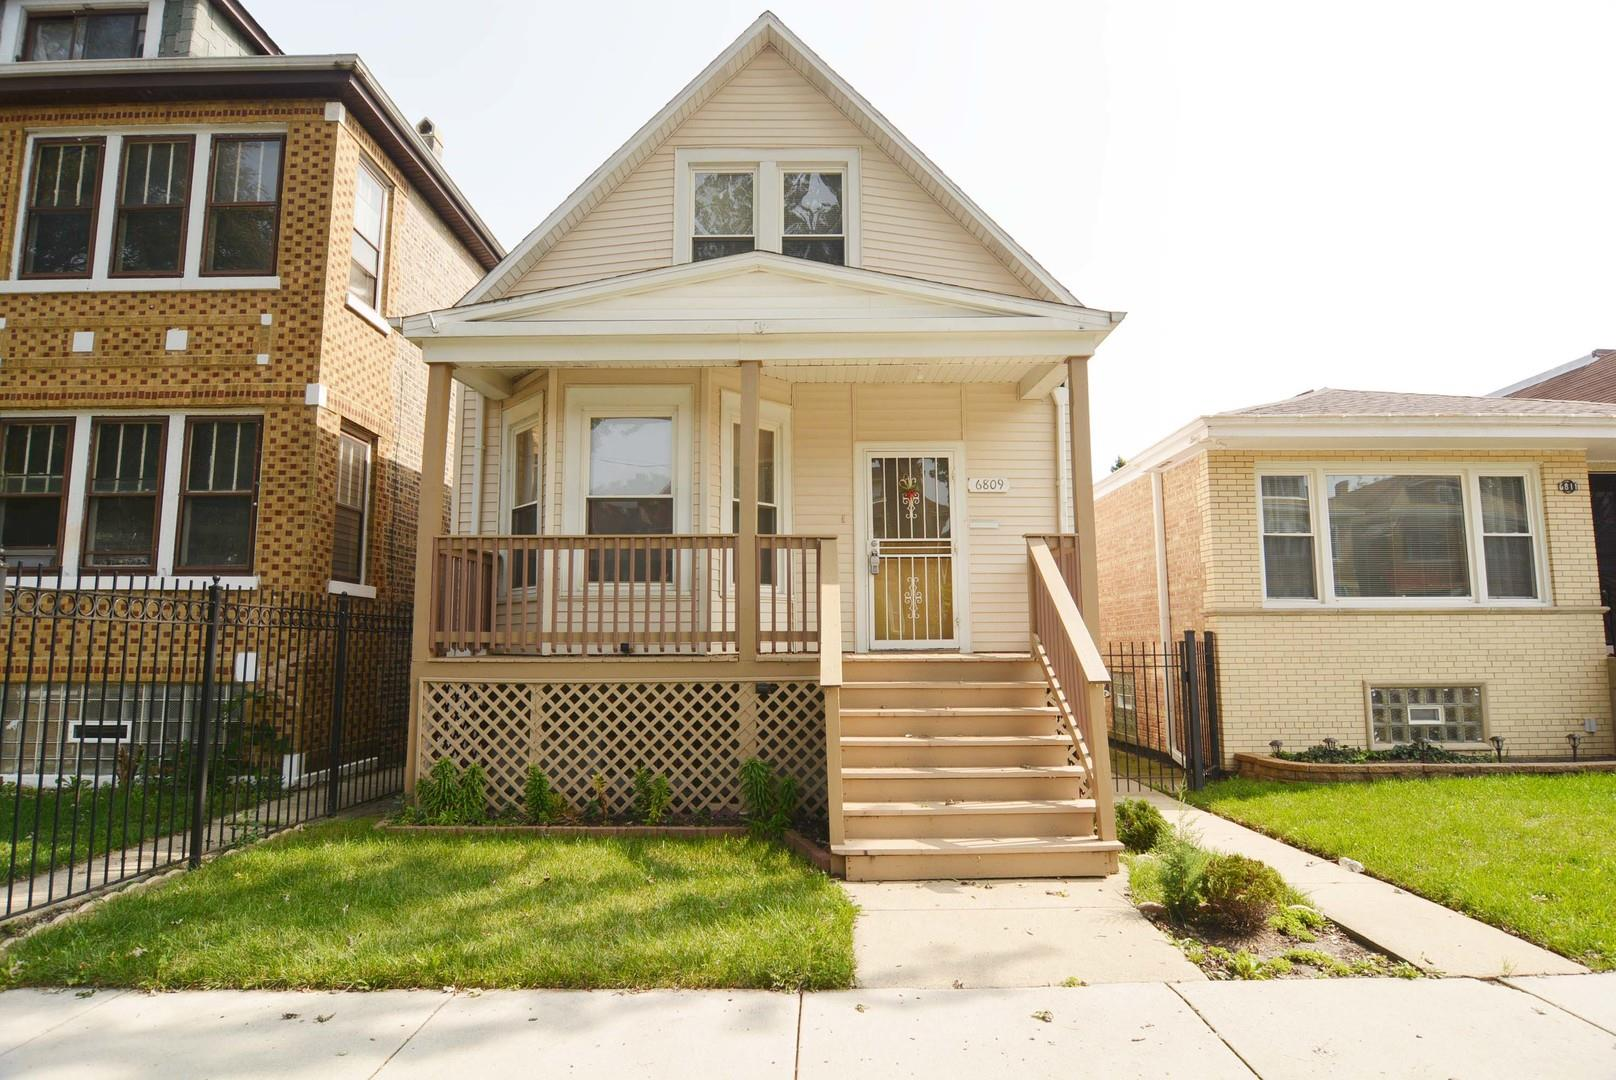 6809 S Rockwell Street, Chicago, IL 60629 - #: 10902607